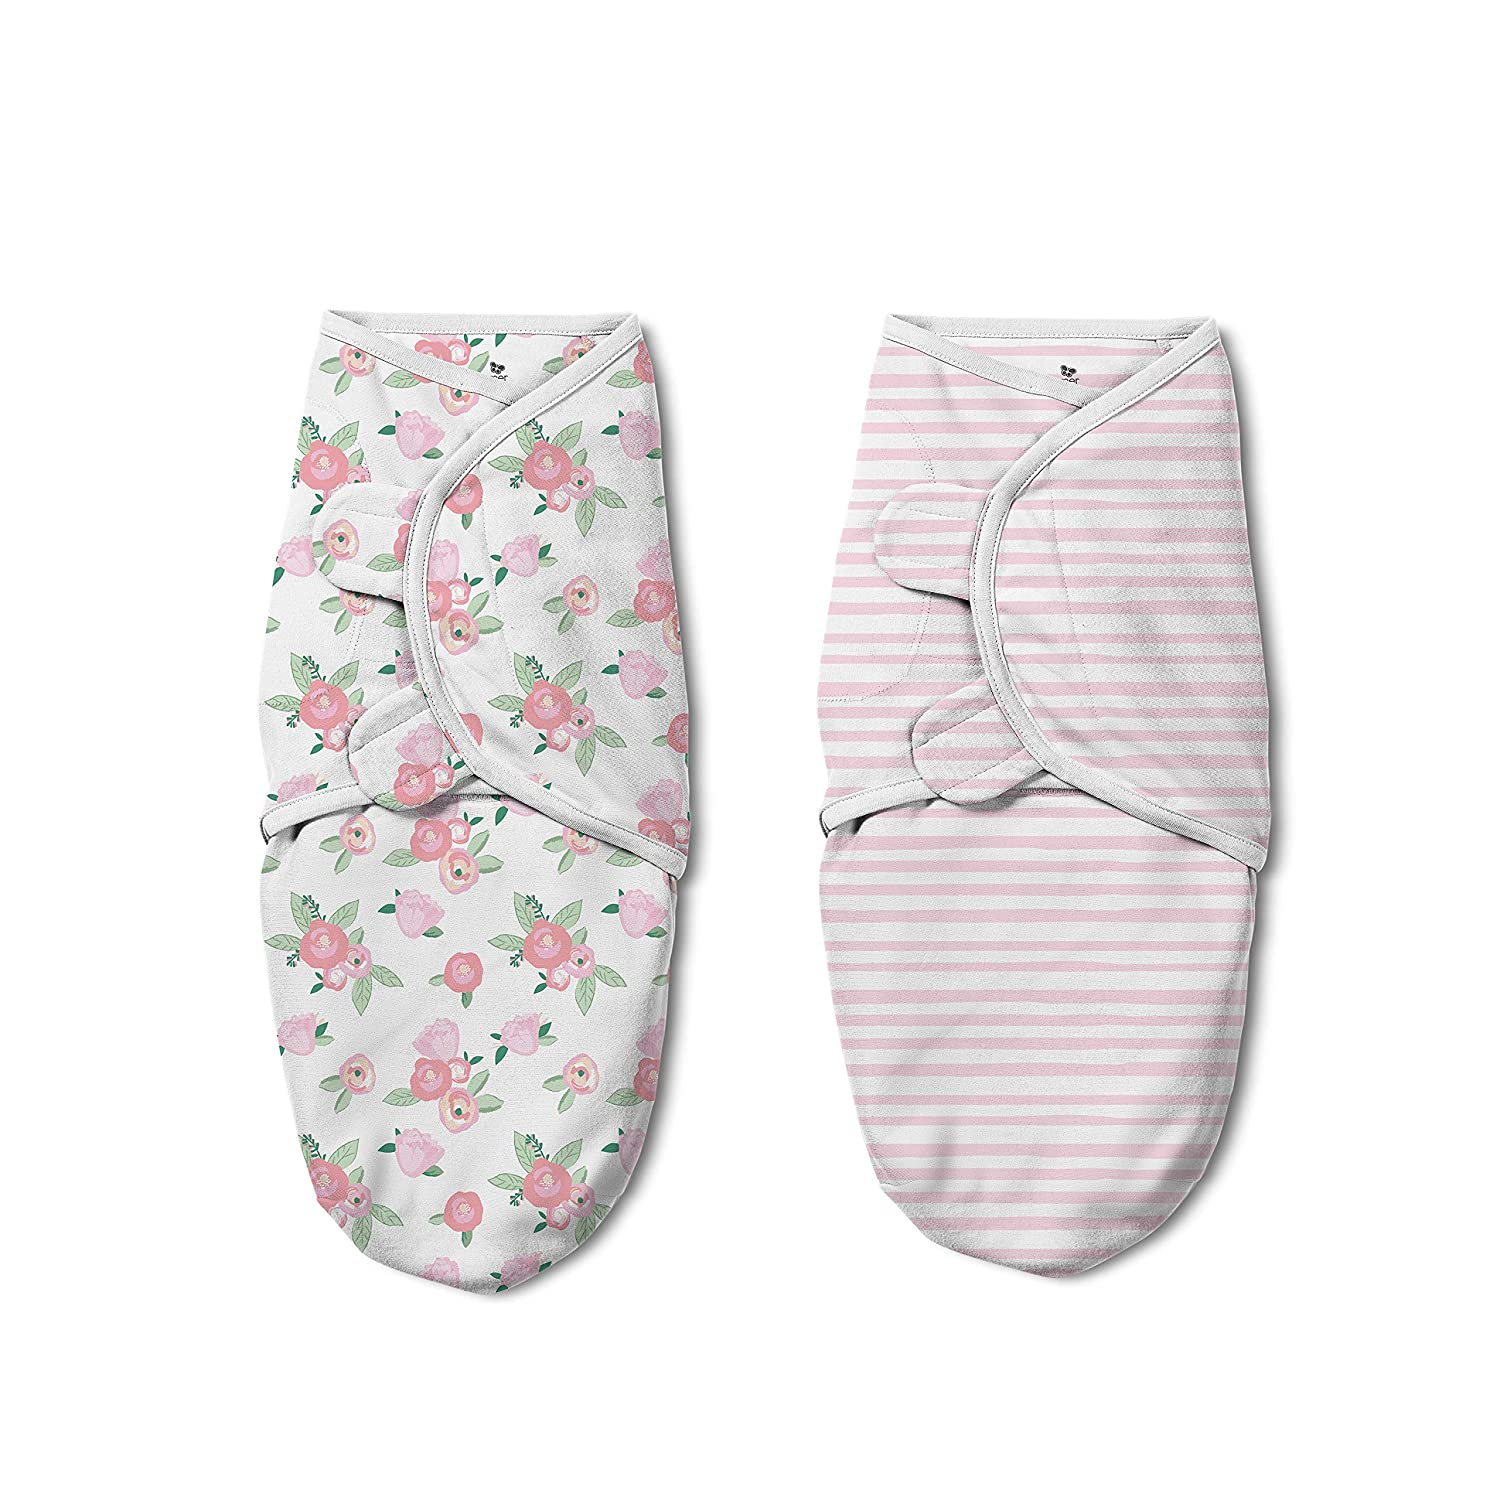 SwaddleMe Original Swaddle Luxe Edition with Easy Change Zipper Large 3-6 Months, 14-18 lbs 2Pk Ellie